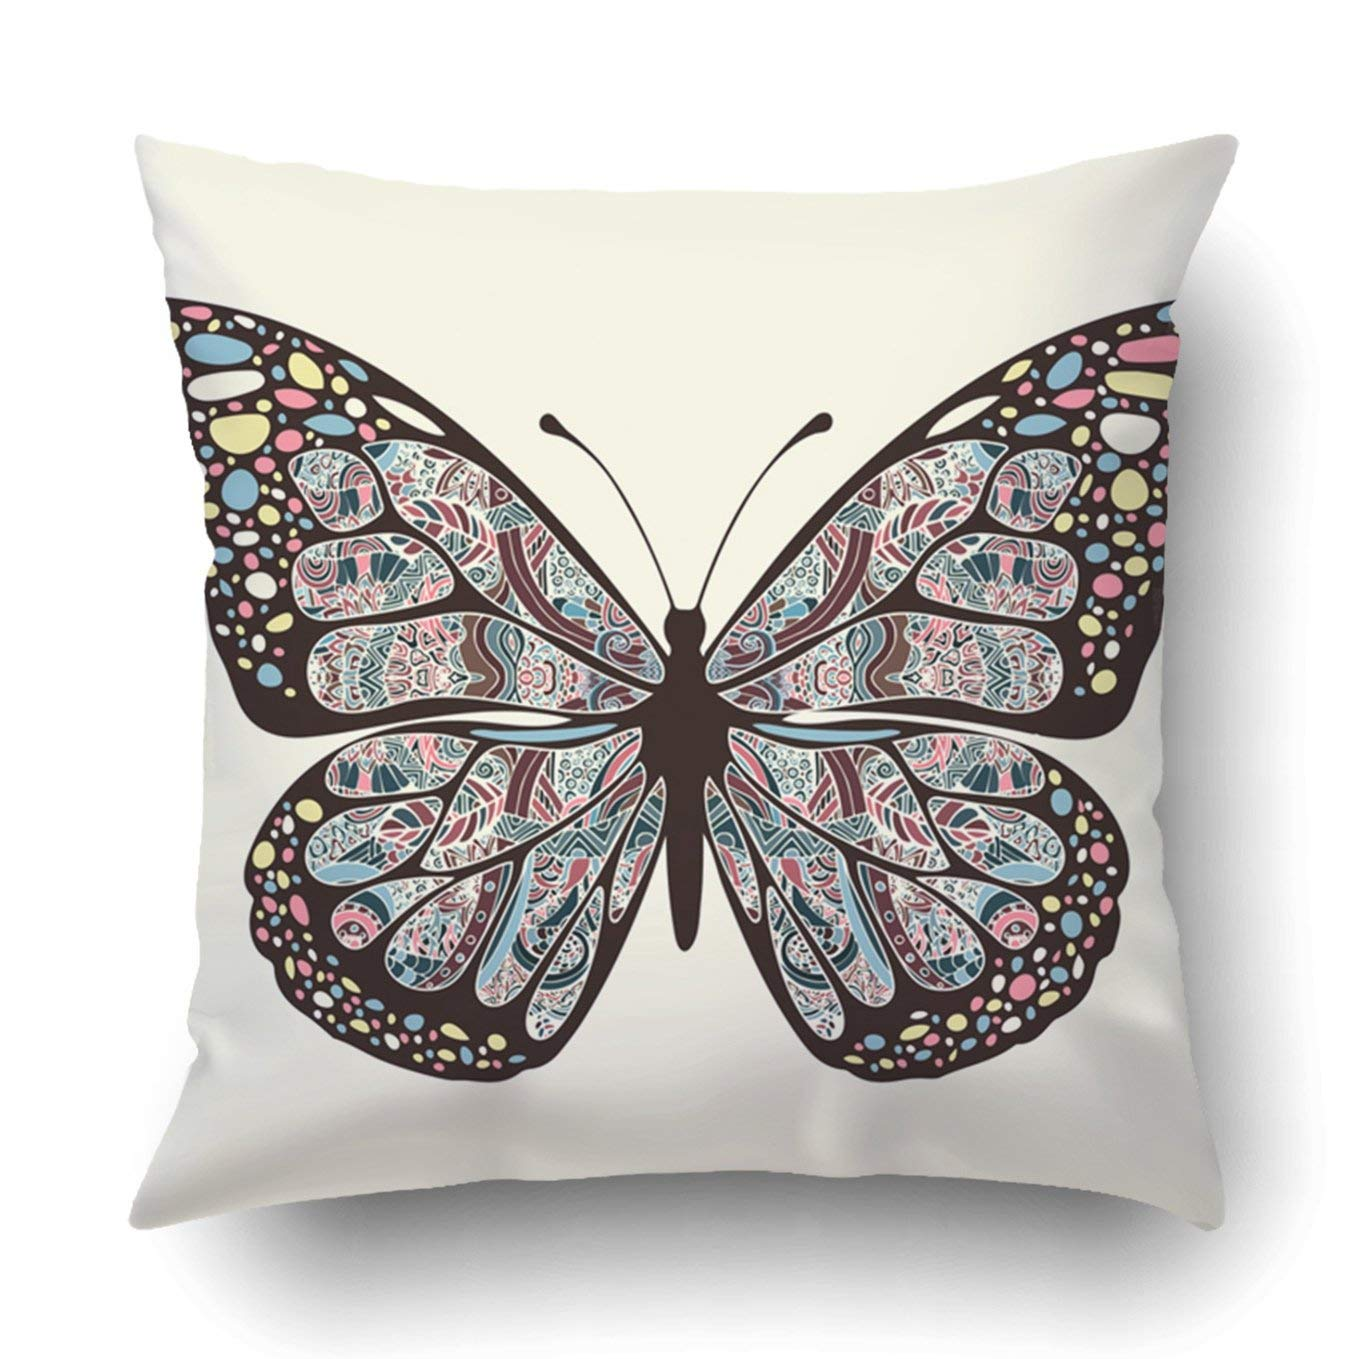 WOPOP Butterfly Wings with multicolored boho ethnic hippie arabesque bohemian exotic Pillowcase Throw Pillow Cover Case 16x16 inches